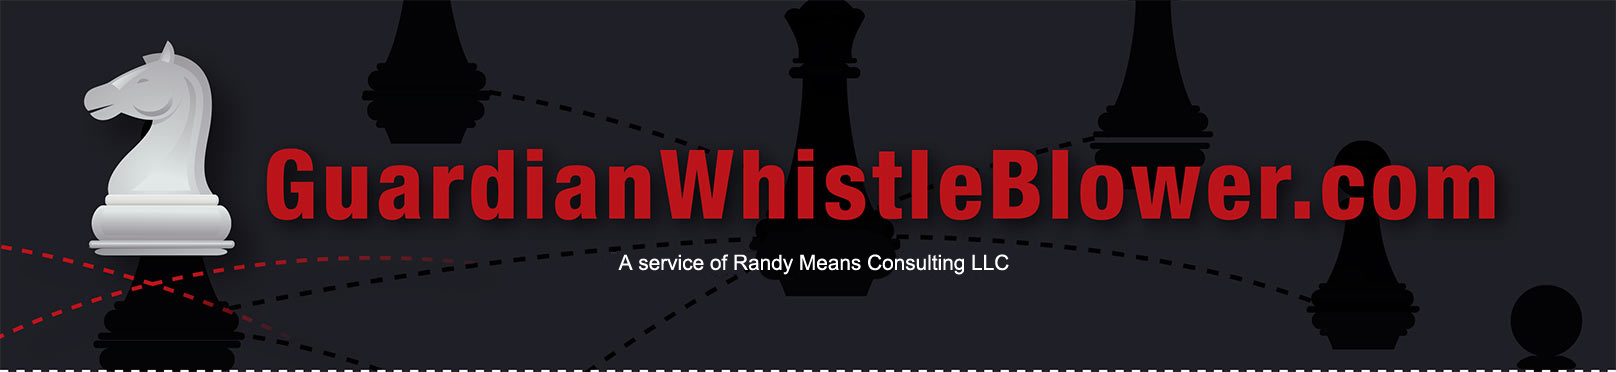 Guardian Whistle Blower - Randy Means Consulting LLC